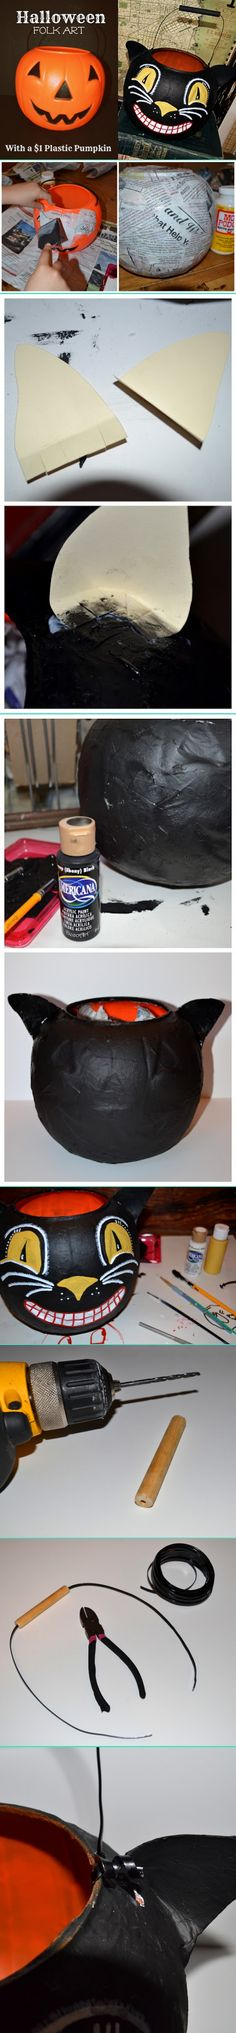 """Black Cat pail-Remove plastic handle, apply bits of newspaper & Mod Podge or paper mache paste to exterior of pumpkin. Paint brush works better than foam brush. Let dry. Cut ear from heavy card stock, fringe ends,  glue to pumpkin behind handle holes, paper mache over ears. Dry. Paint pumpkin black.  Dry. Paint face.  Paint inside vintage orange to disguise plastic. Drill hole thru 3.5"""" dowel, fish wire thru, attach to pumpkin."""